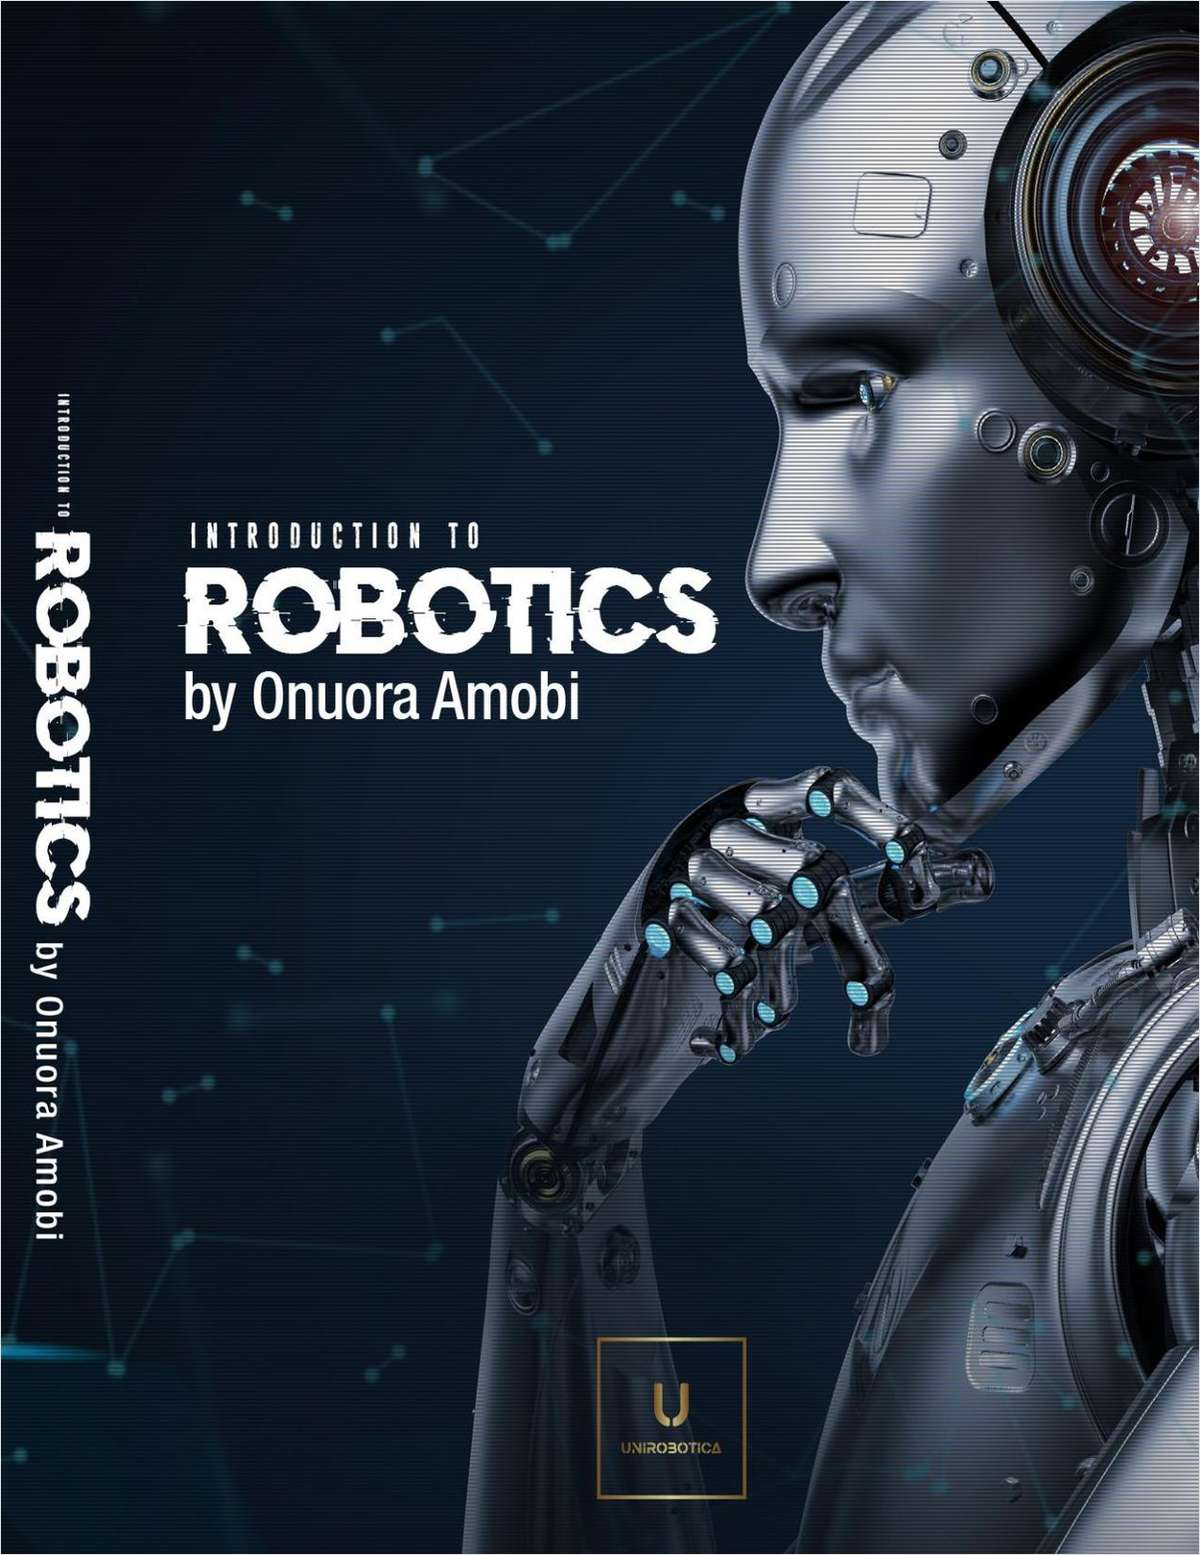 Introduction to Robotics (a $14.95 Value) FREE